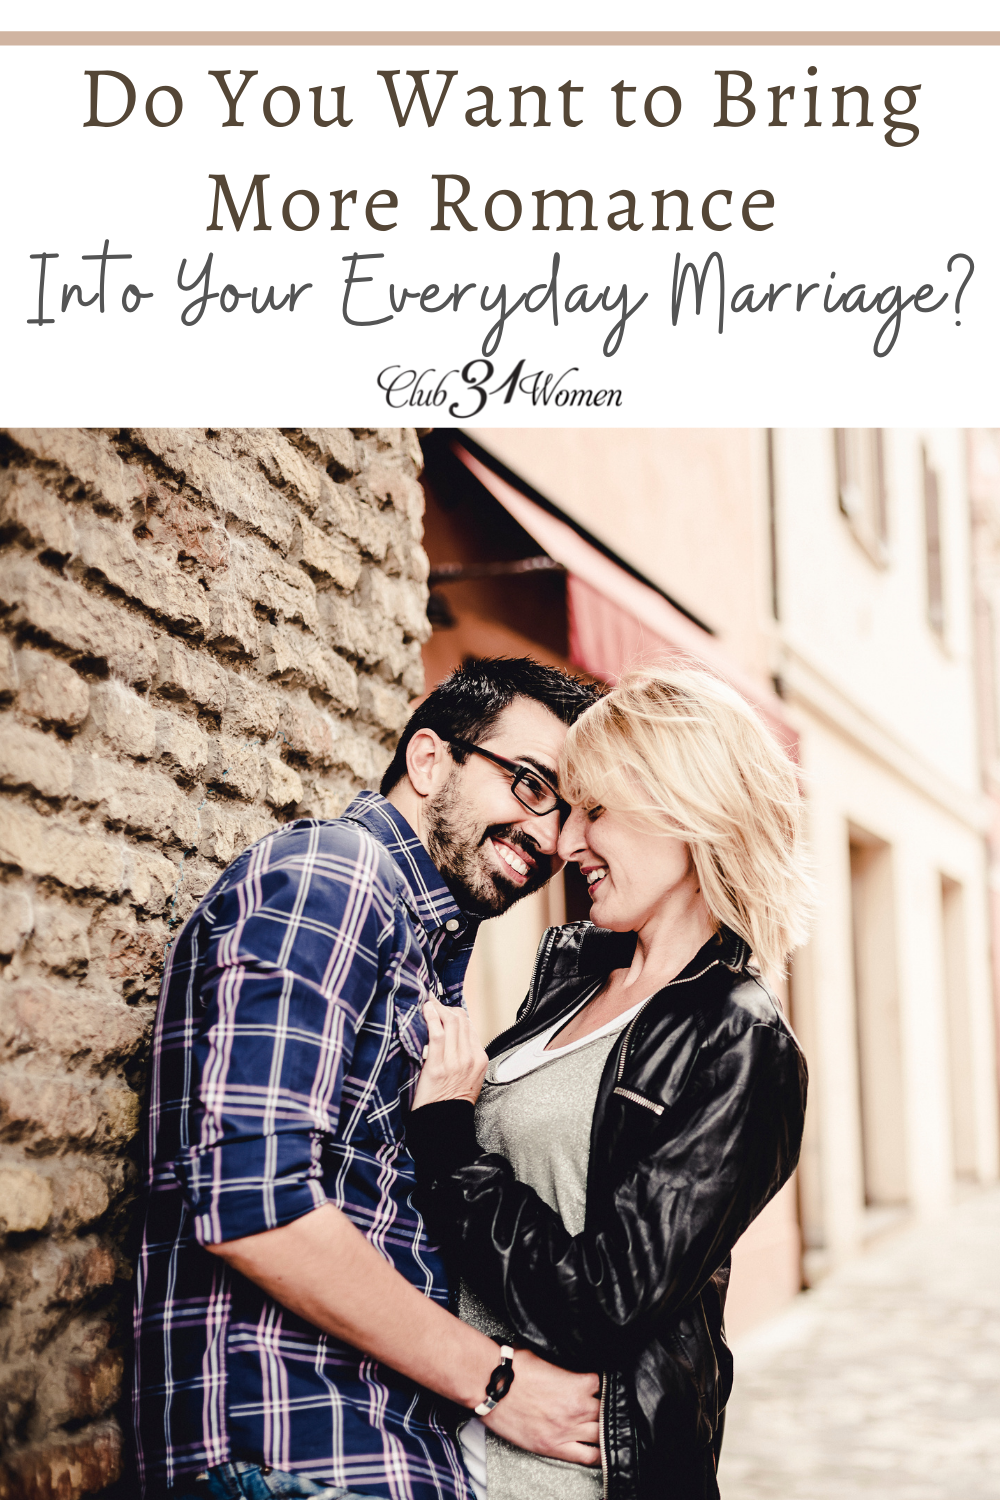 Are you ready to turn the heat up in your marriage? Consider the flirtation experiment and watch it turn sparks into flames! via @Club31Women